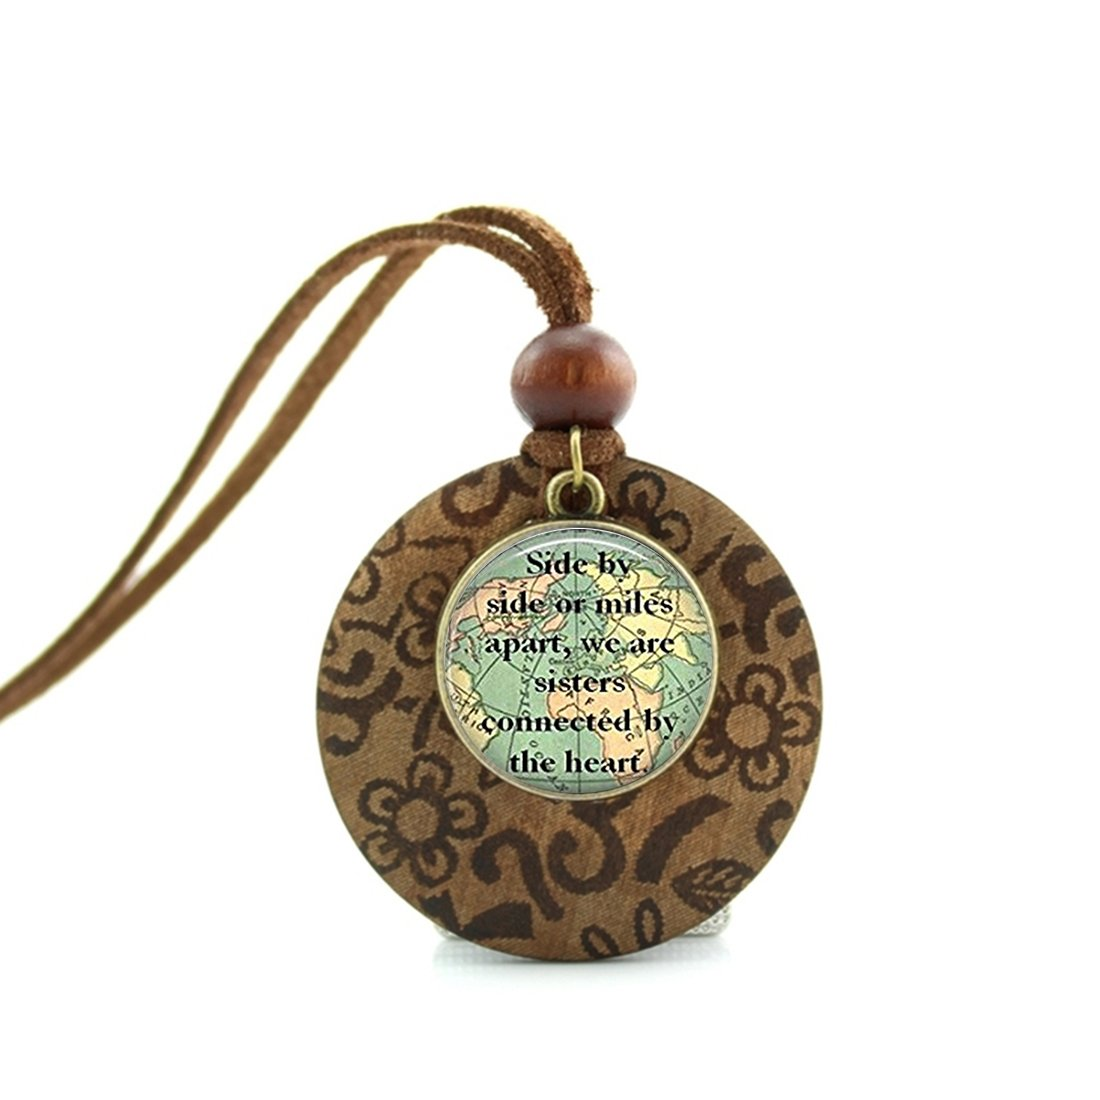 Handmade Wooden Base Necklace Round Pendant Decoration Vintage Long Leather Chain - Sister Map Travel World Map